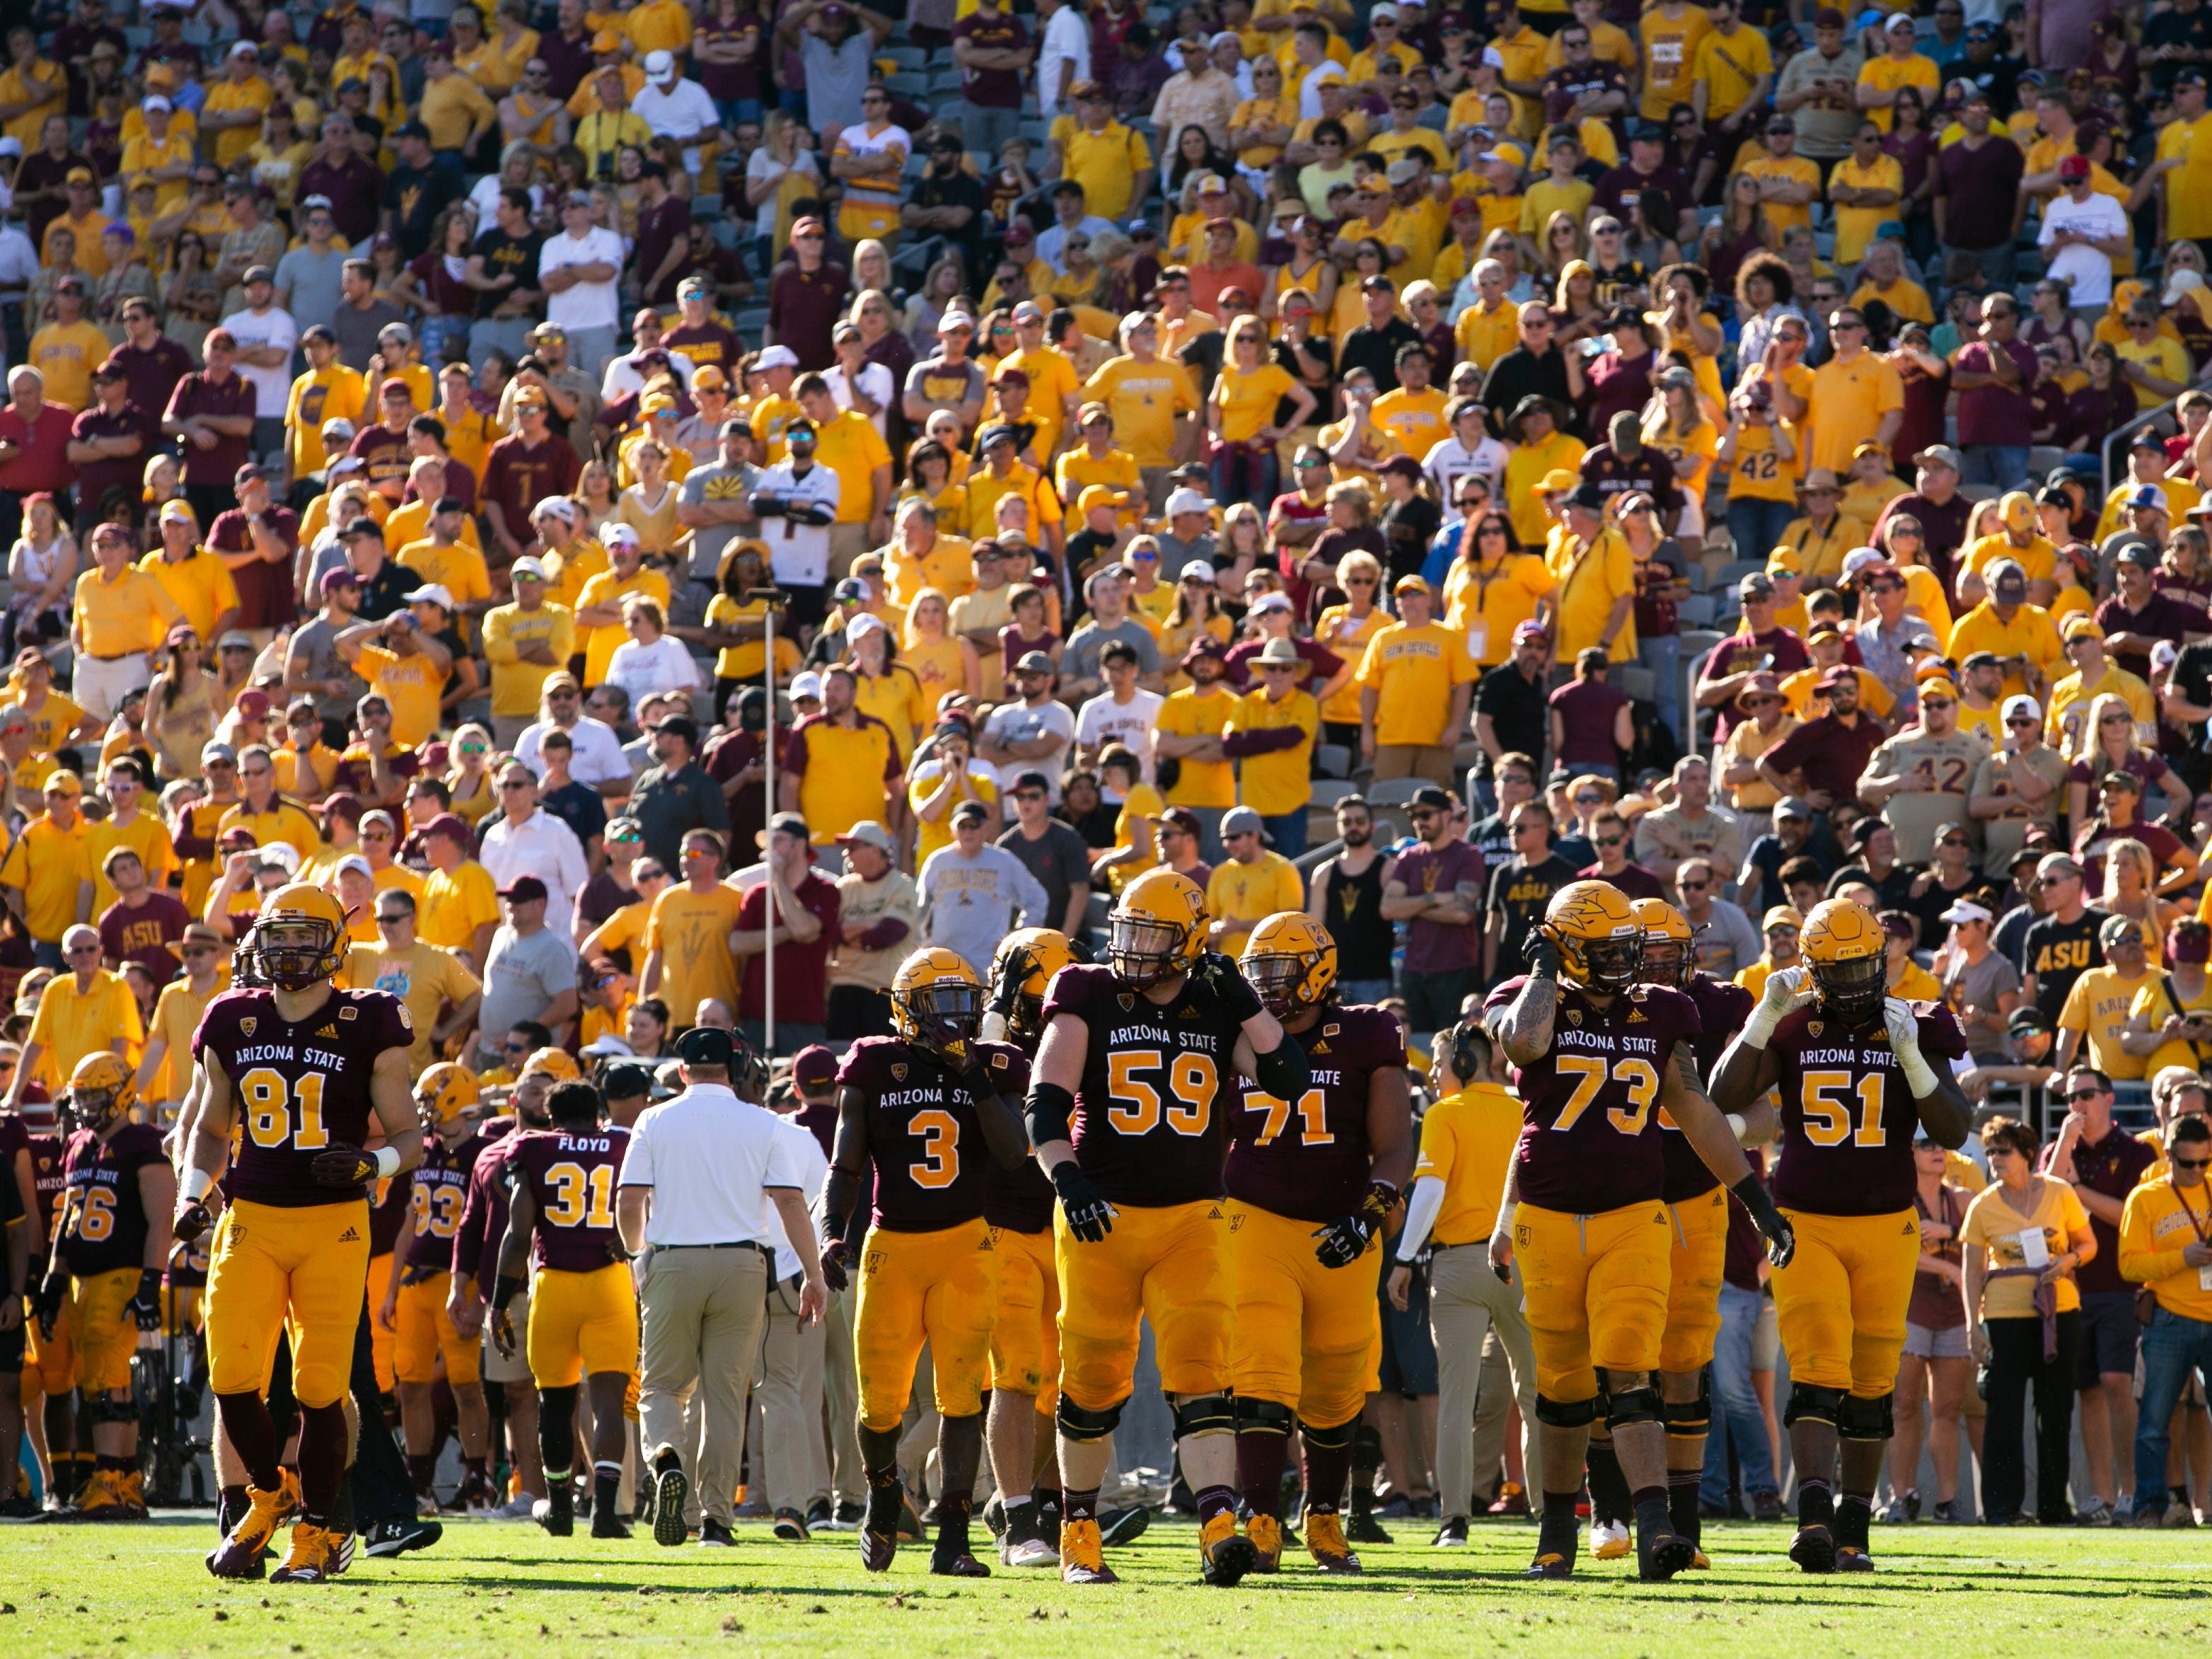 The ASU offense takes the field during the fourth quarter of the PAC-12 college football game against UCLA at Sun Devil Stadium in Tempe on Saturday, November 10, 2018.